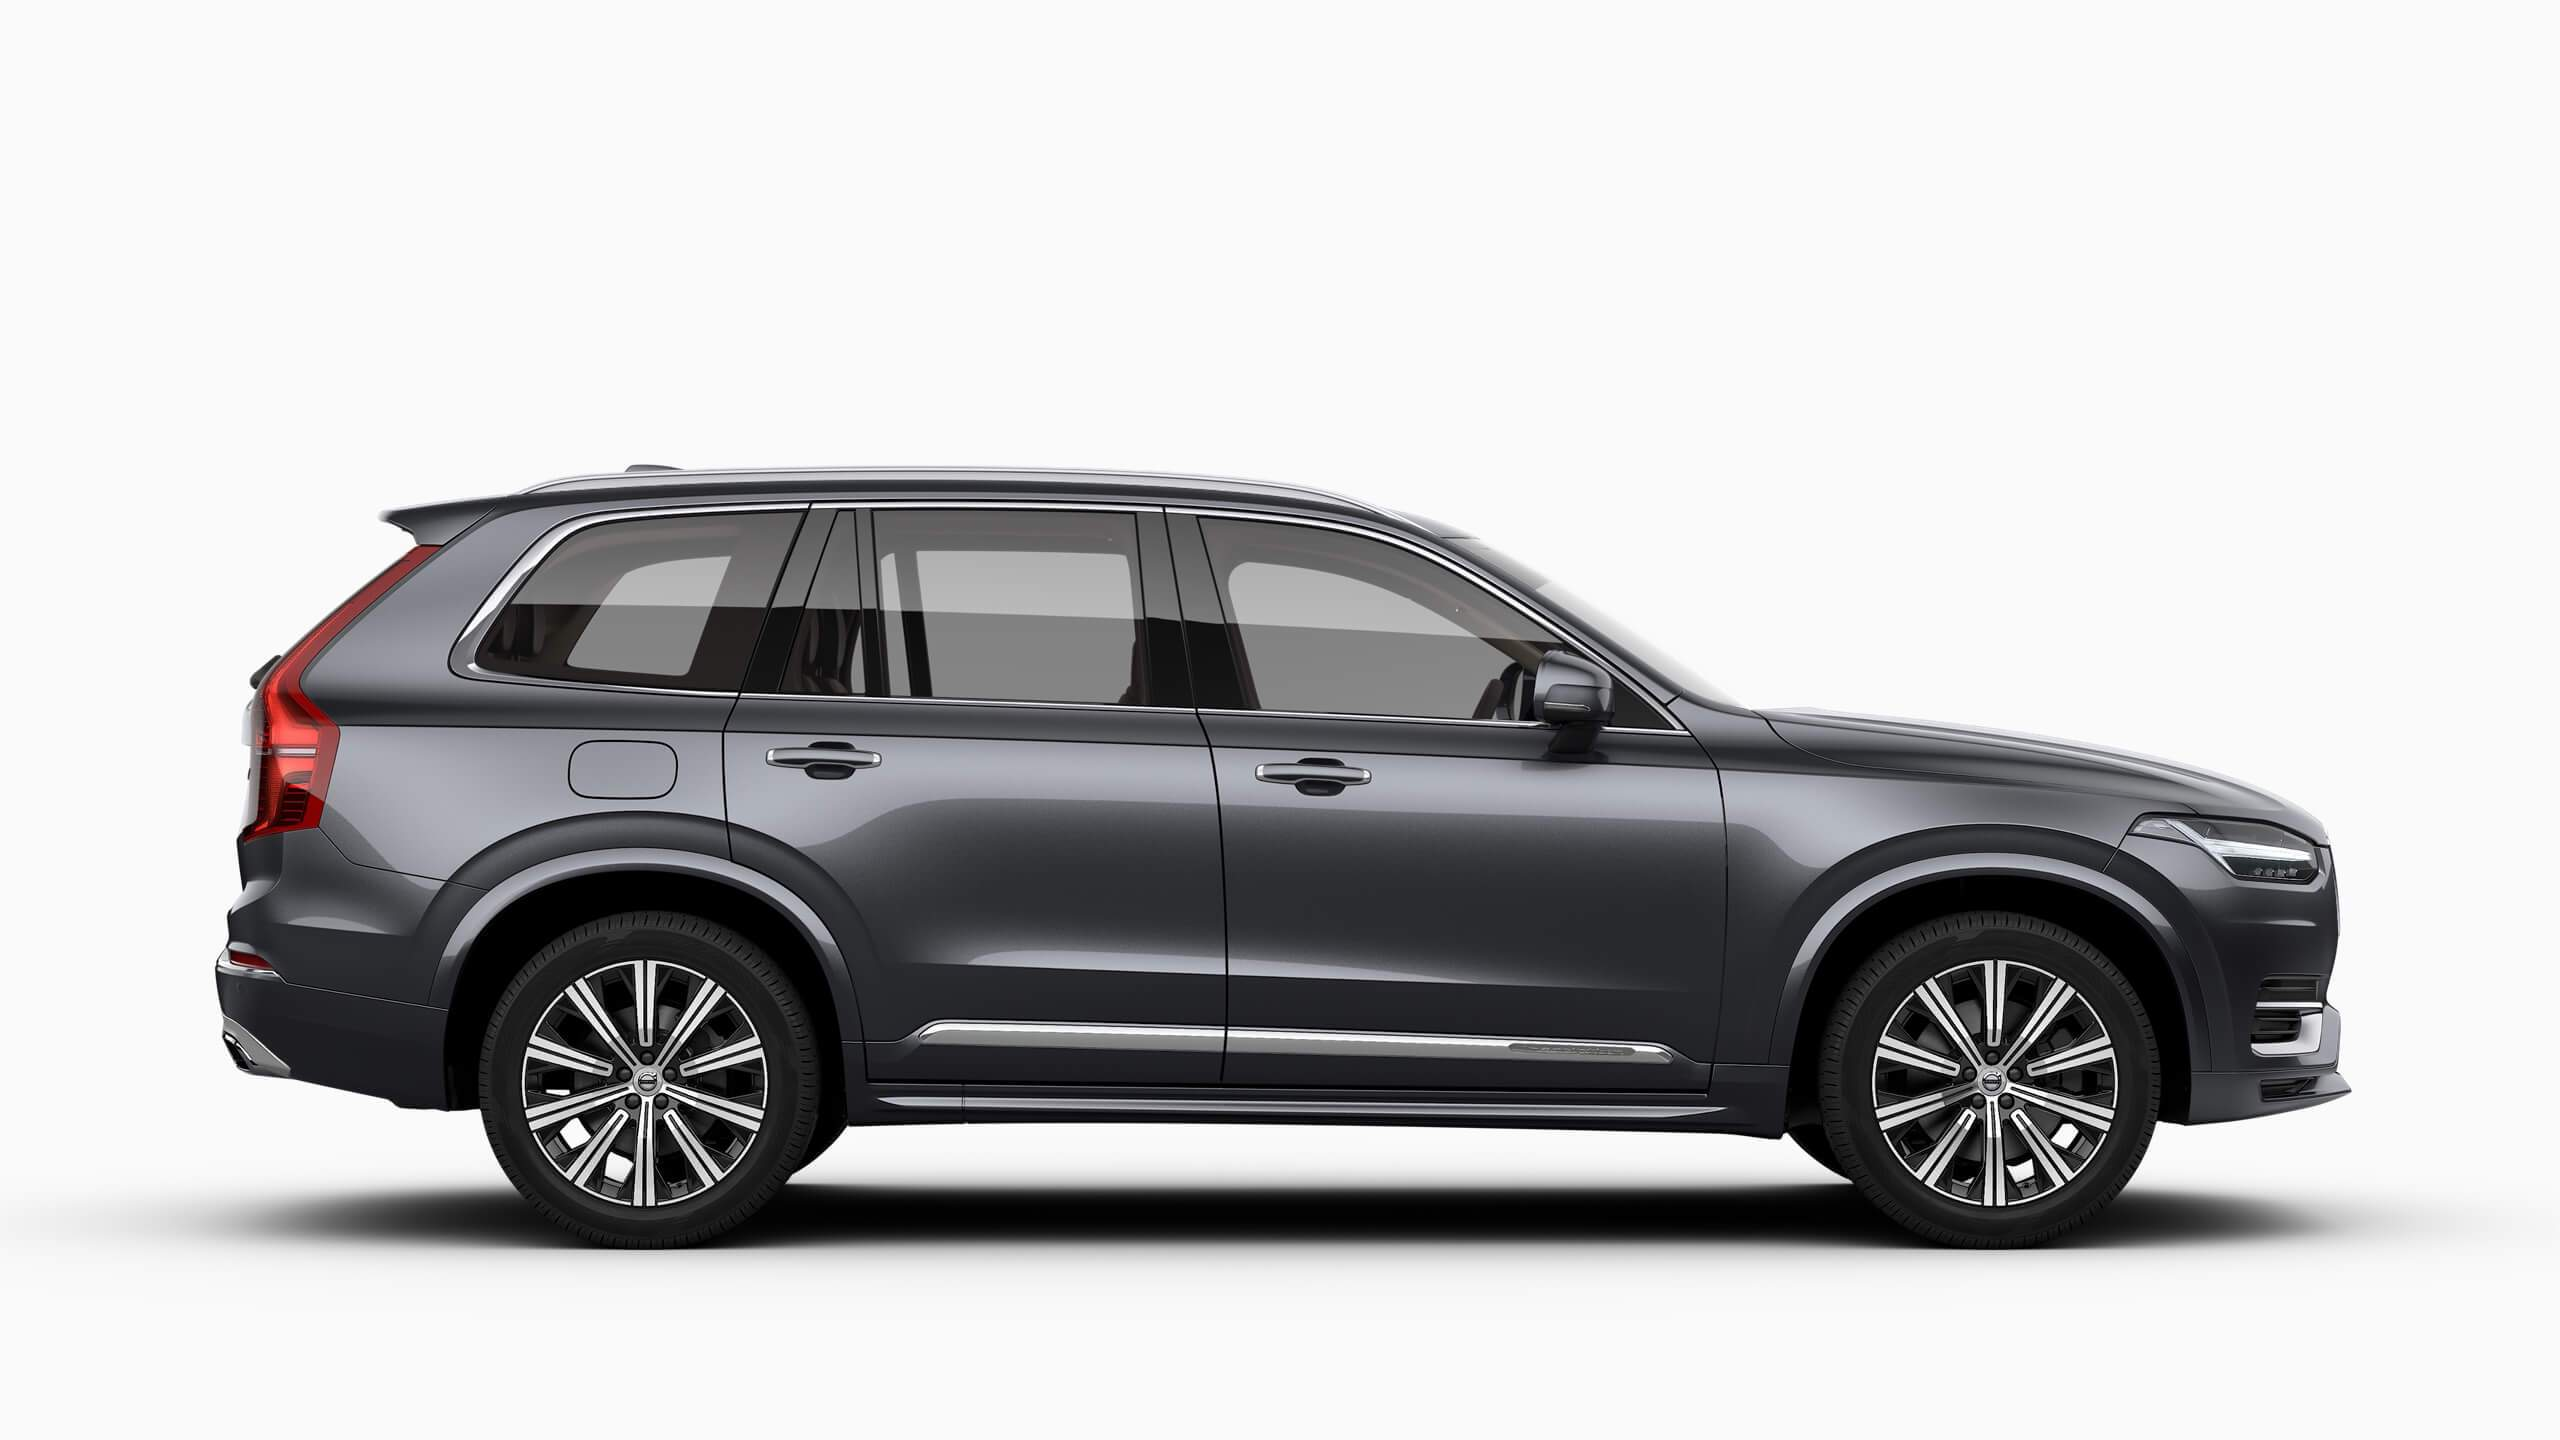 01_Osmium_Grey_metallic_XC90